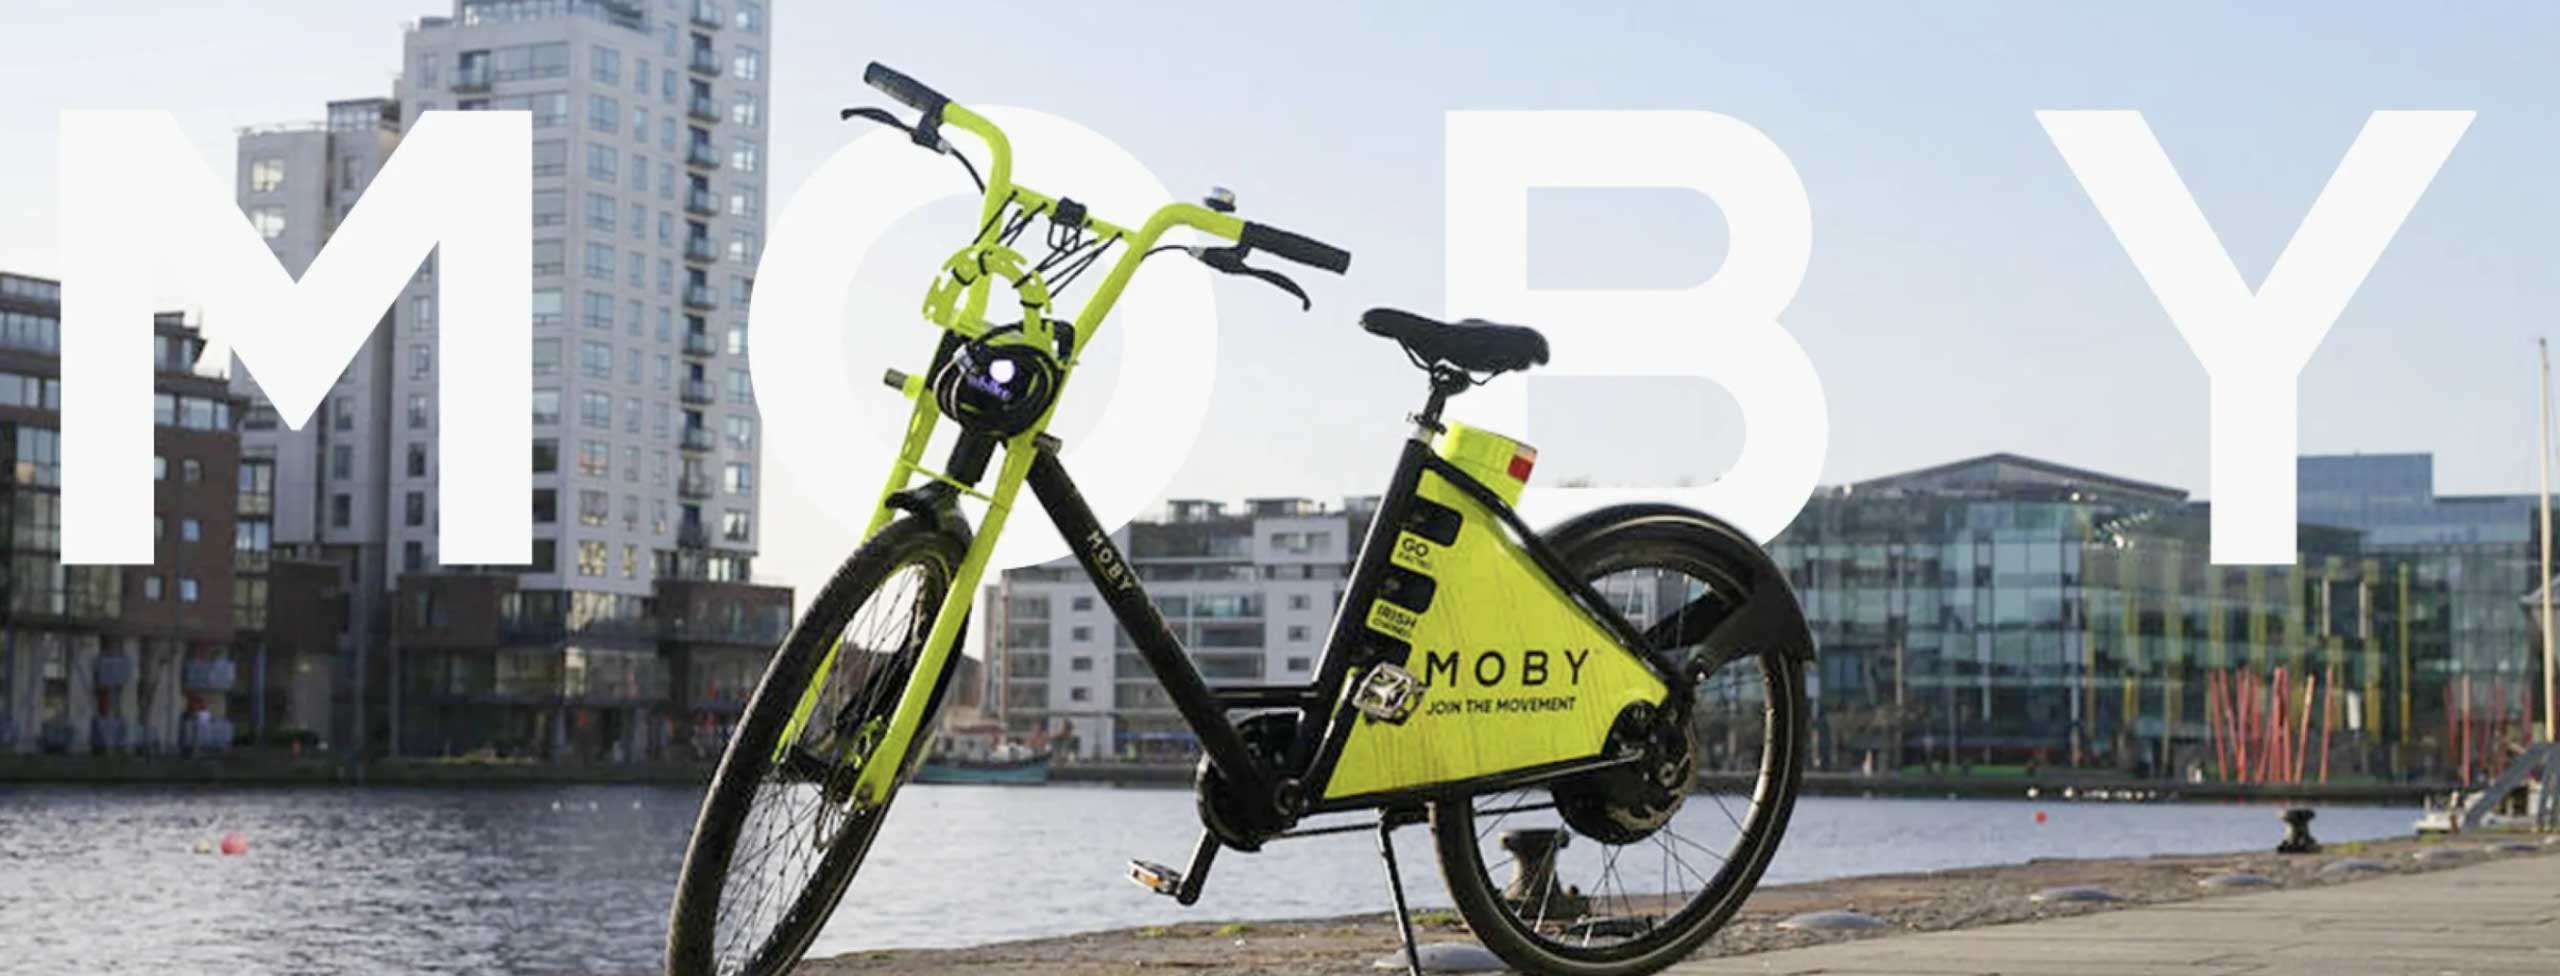 Moby Bikes